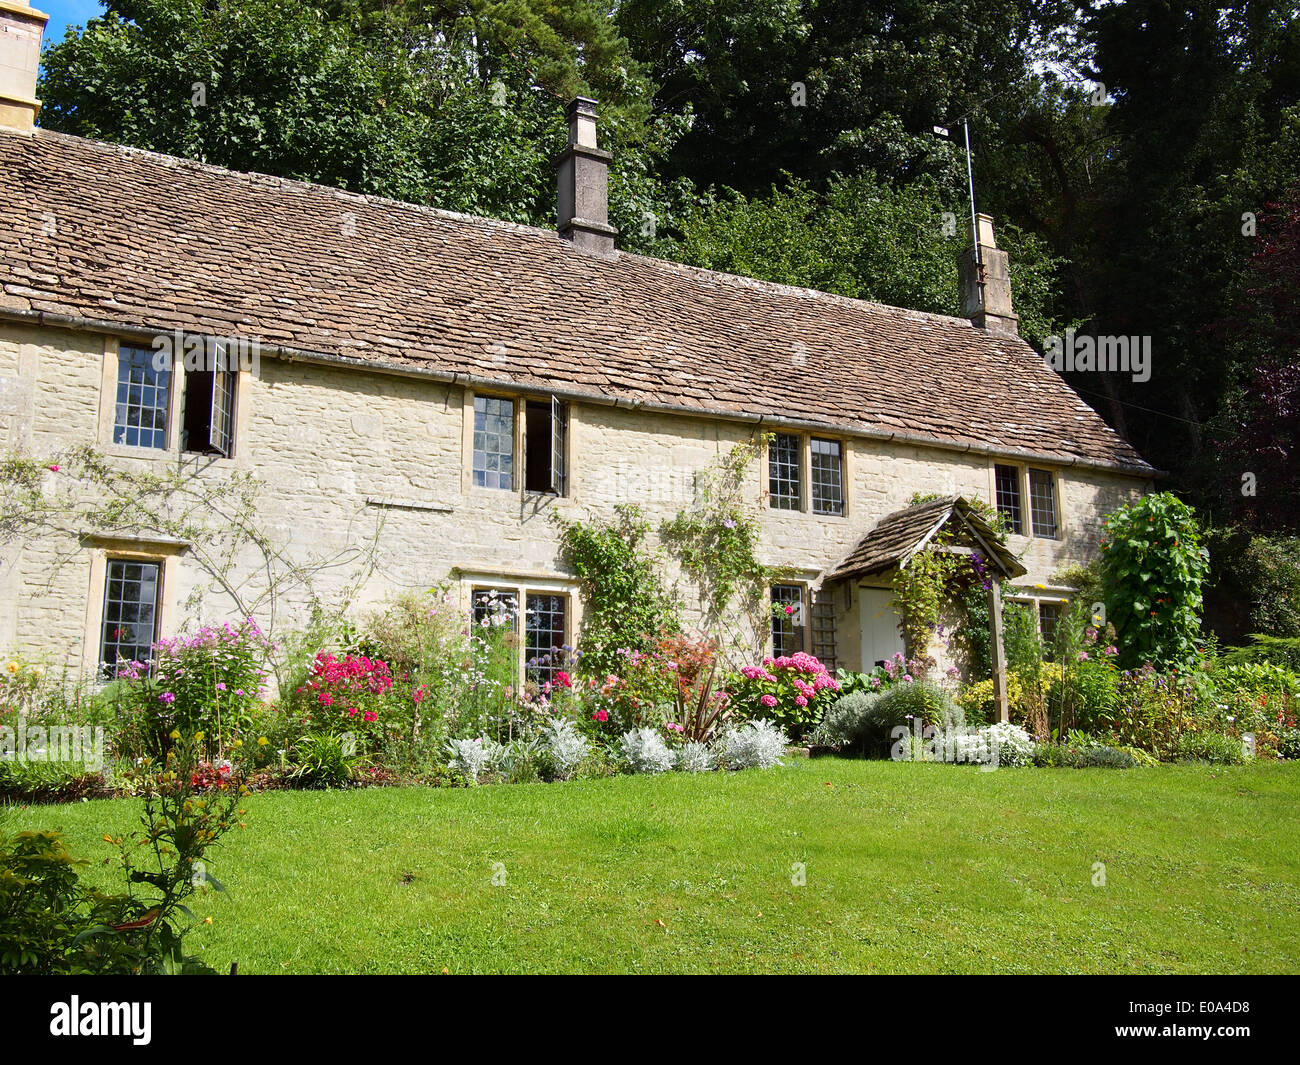 An English cottage built out of Cotswold stone with stone tiles on the roof with a garden full of flowers in the UK. - Stock Image